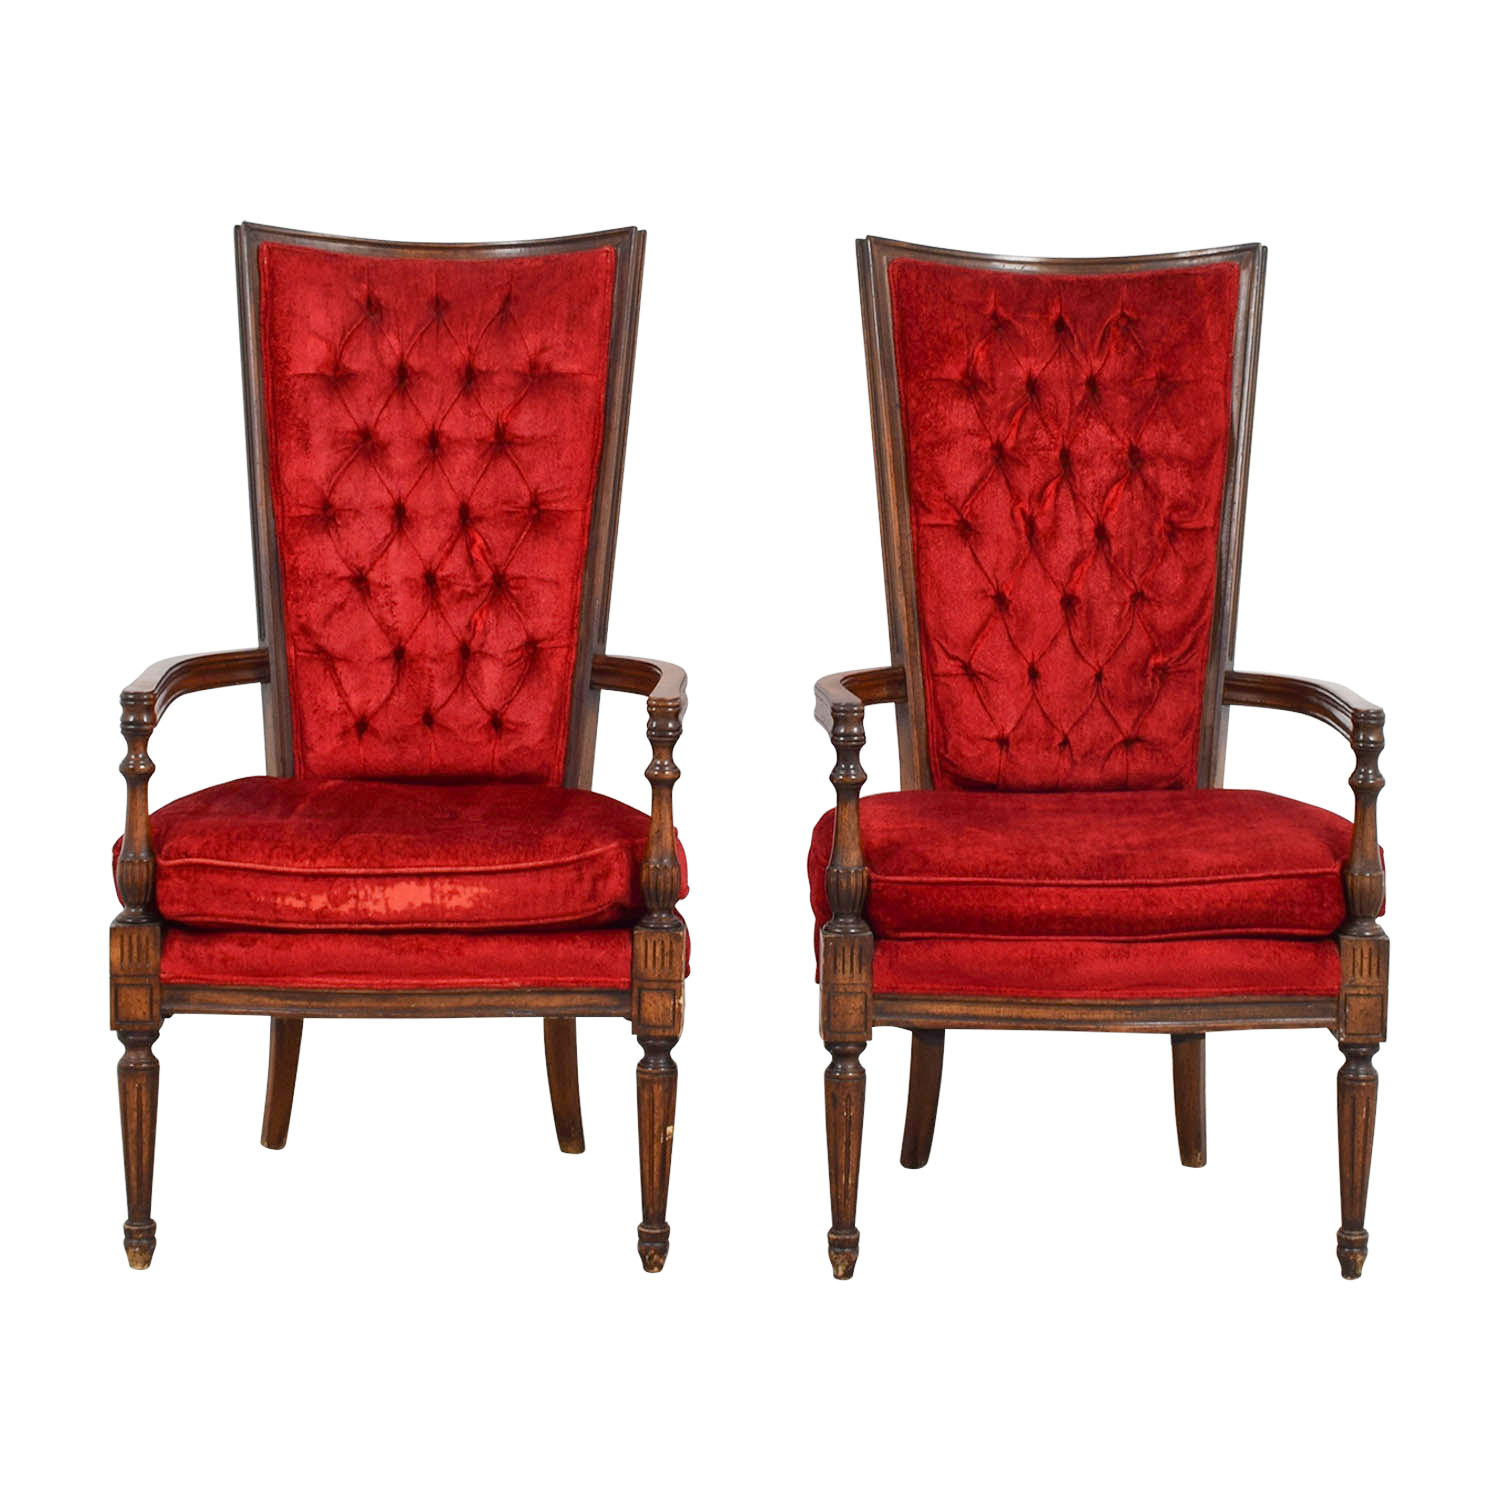 Fine 79 Off Vintage Red Tufted High Back Accent Chairs Chairs Ibusinesslaw Wood Chair Design Ideas Ibusinesslaworg